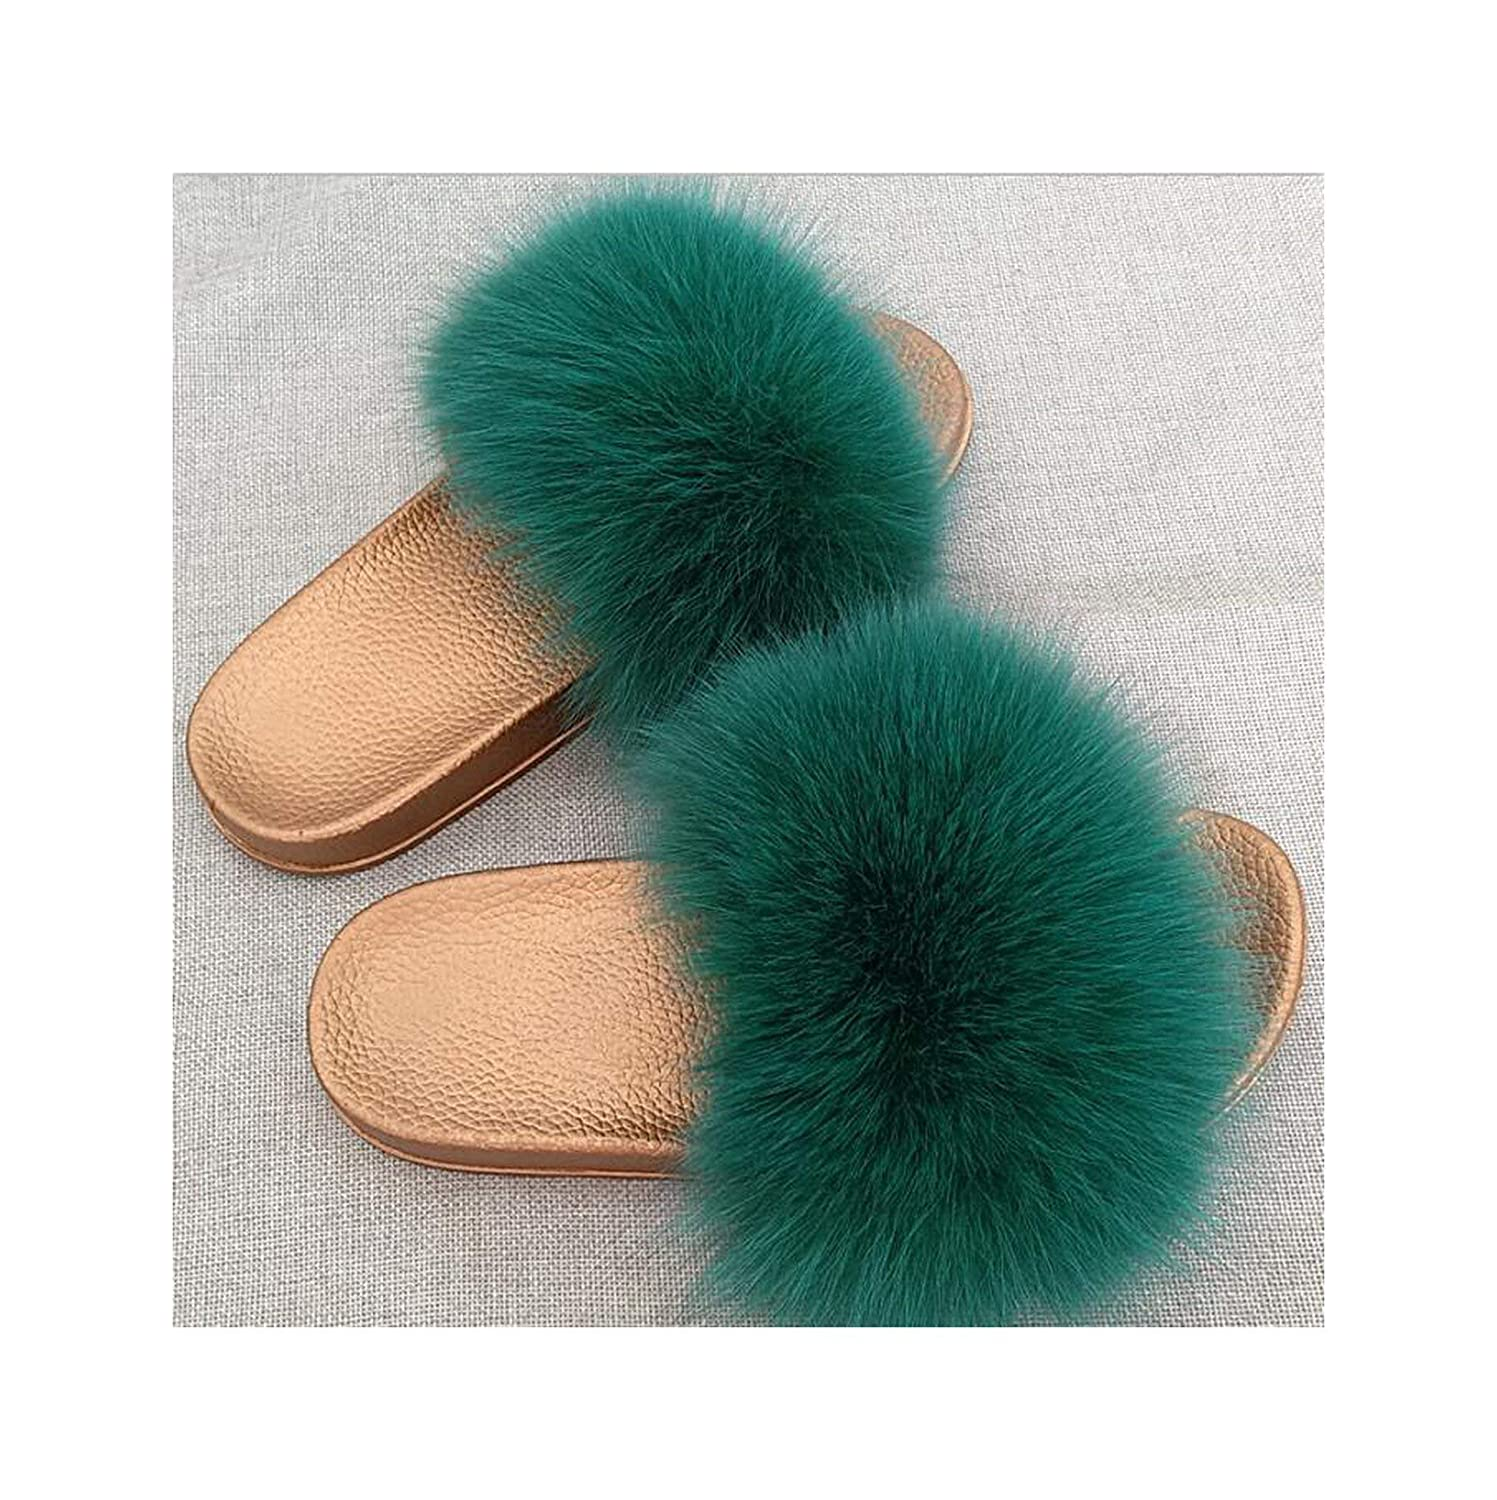 15 Zalin Women's Summer Genuine Fox Fur Slippers PVC Flat Indoor Non-Slip Slippers Furry Slippers